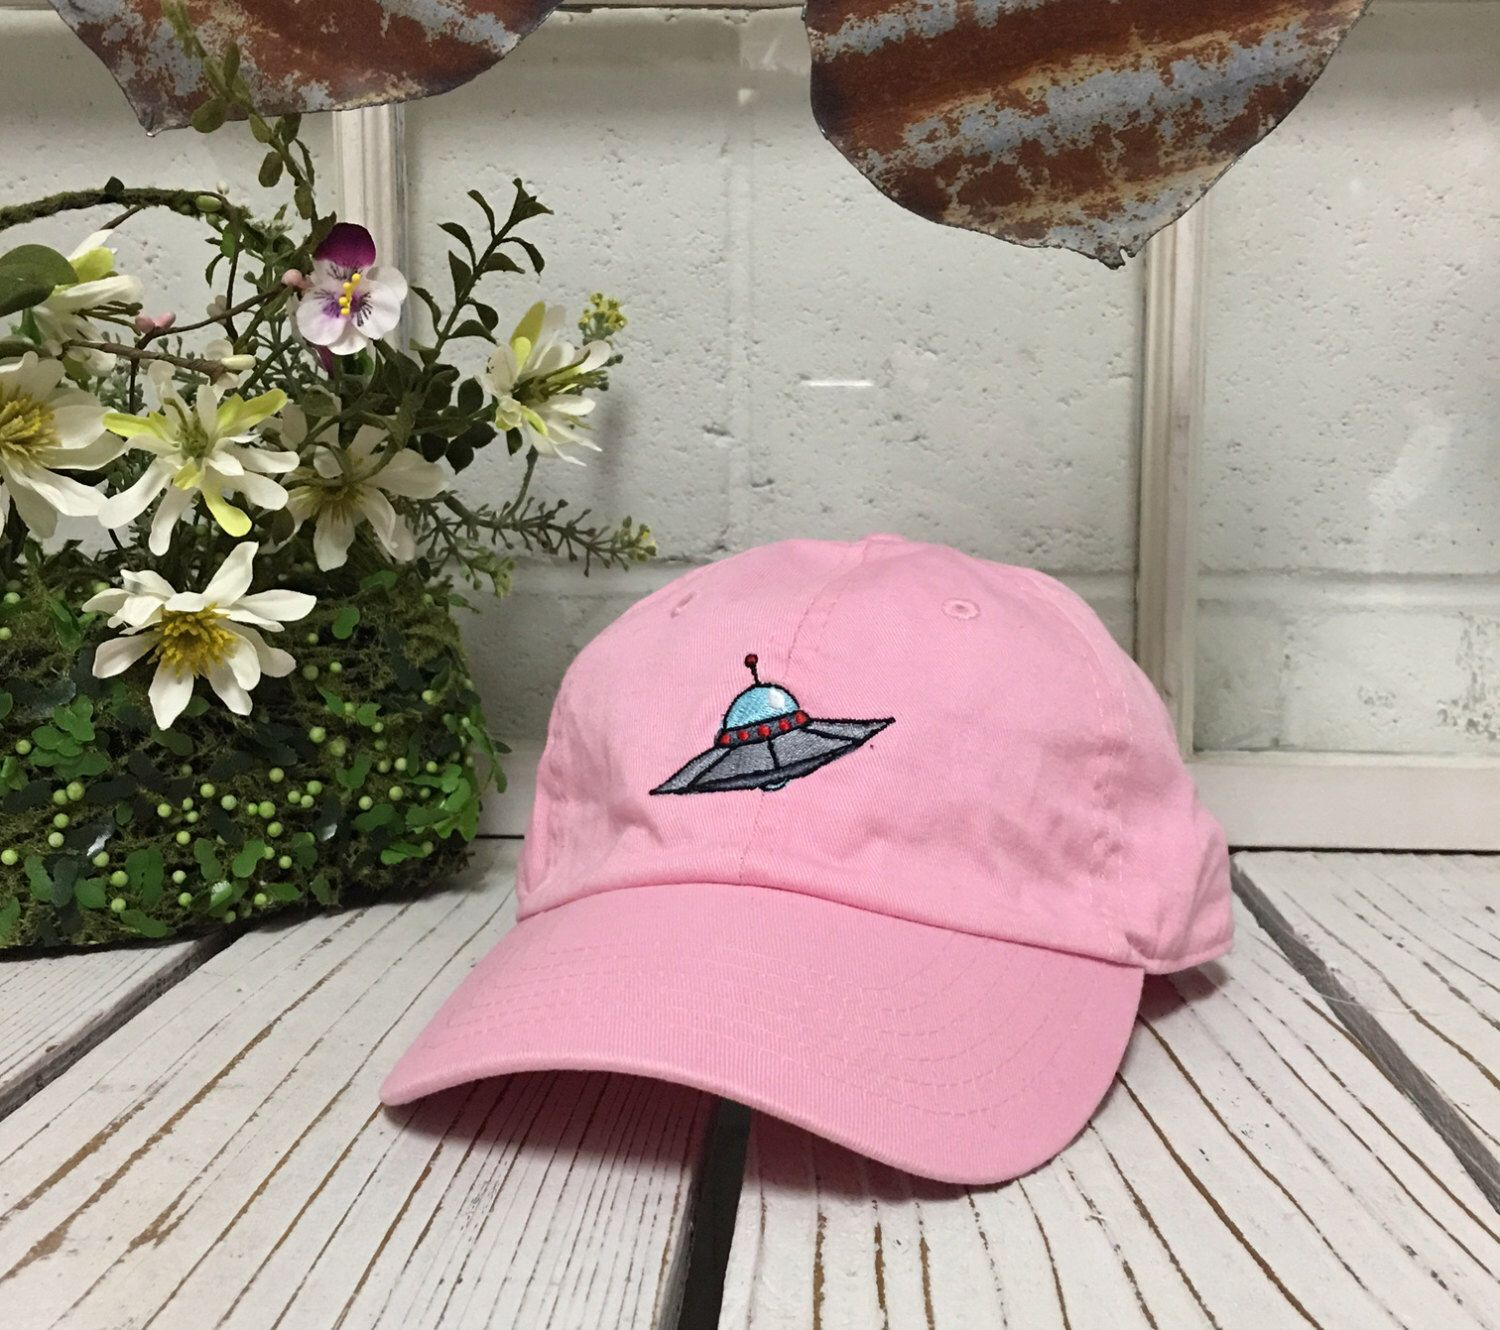 Vintage SPACE SHIP Baseball Cap Low Profile Dad Hats Baseball Hat  Embroidery Pink by TheHatConnection on 4153013be00c